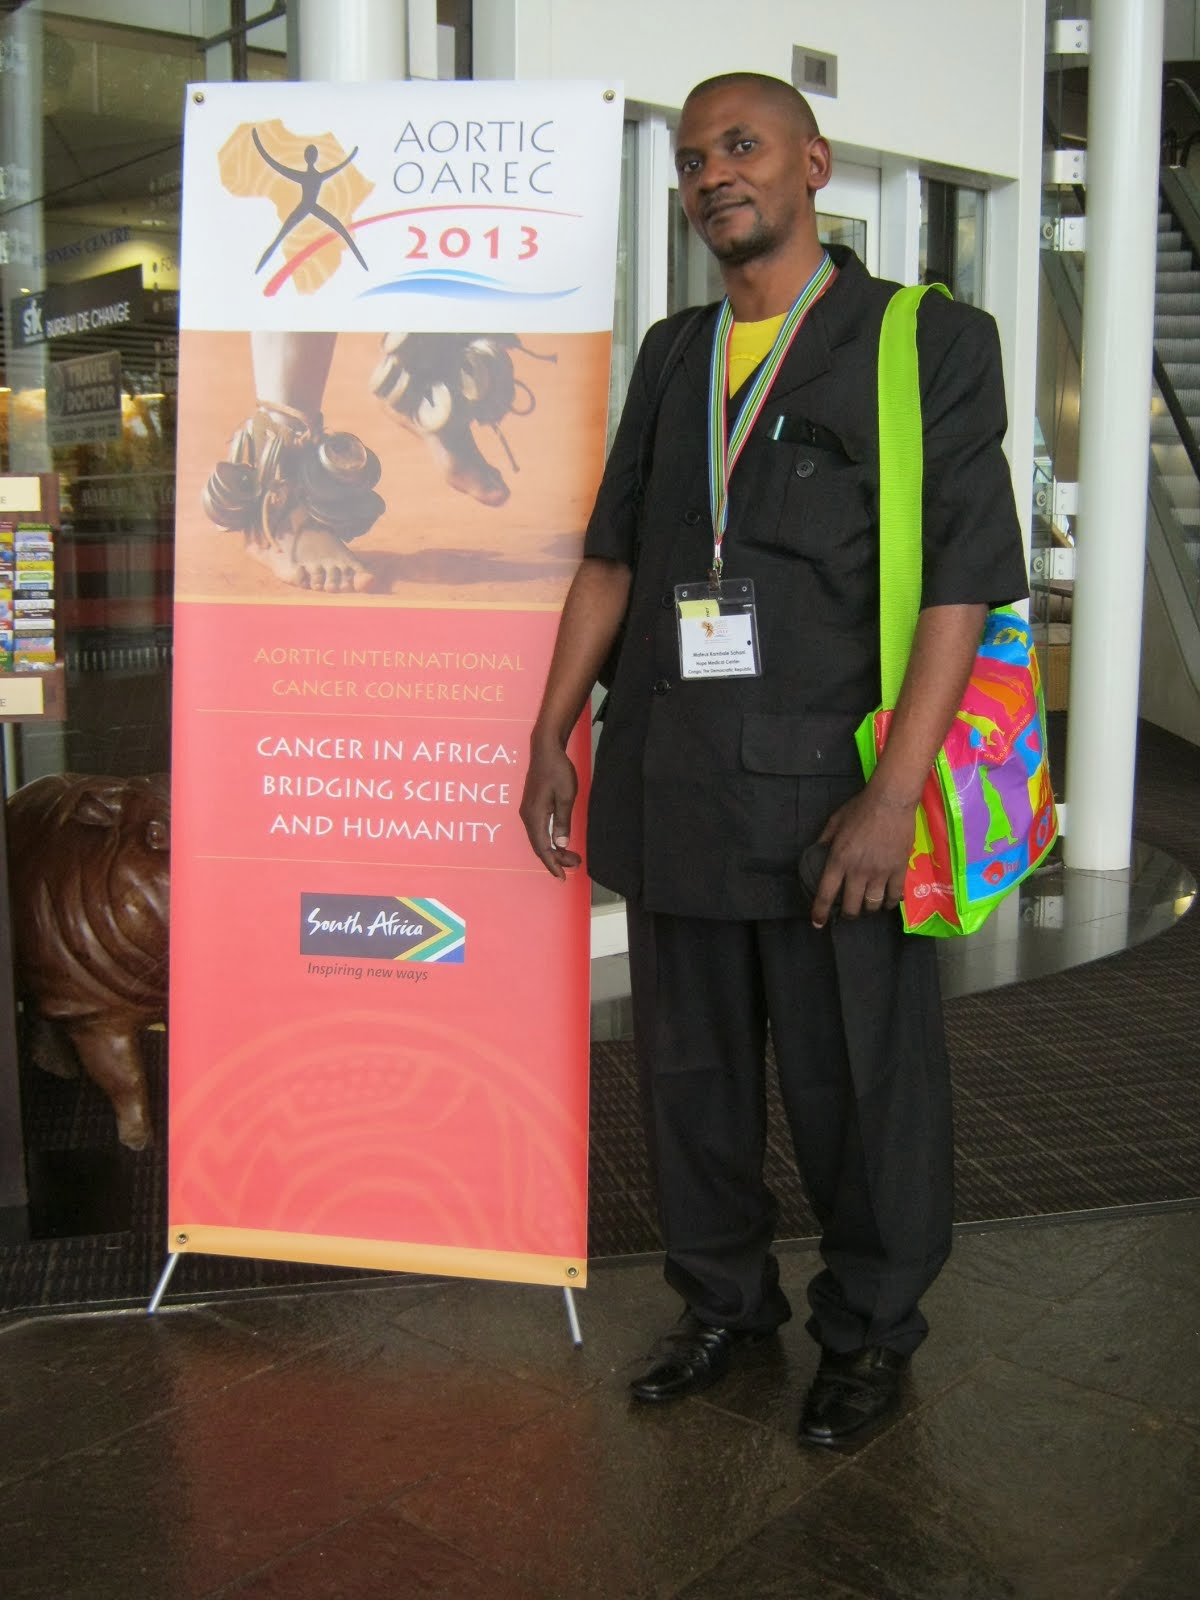 AORTIC 2013 conference and ACLI meeting in Durban